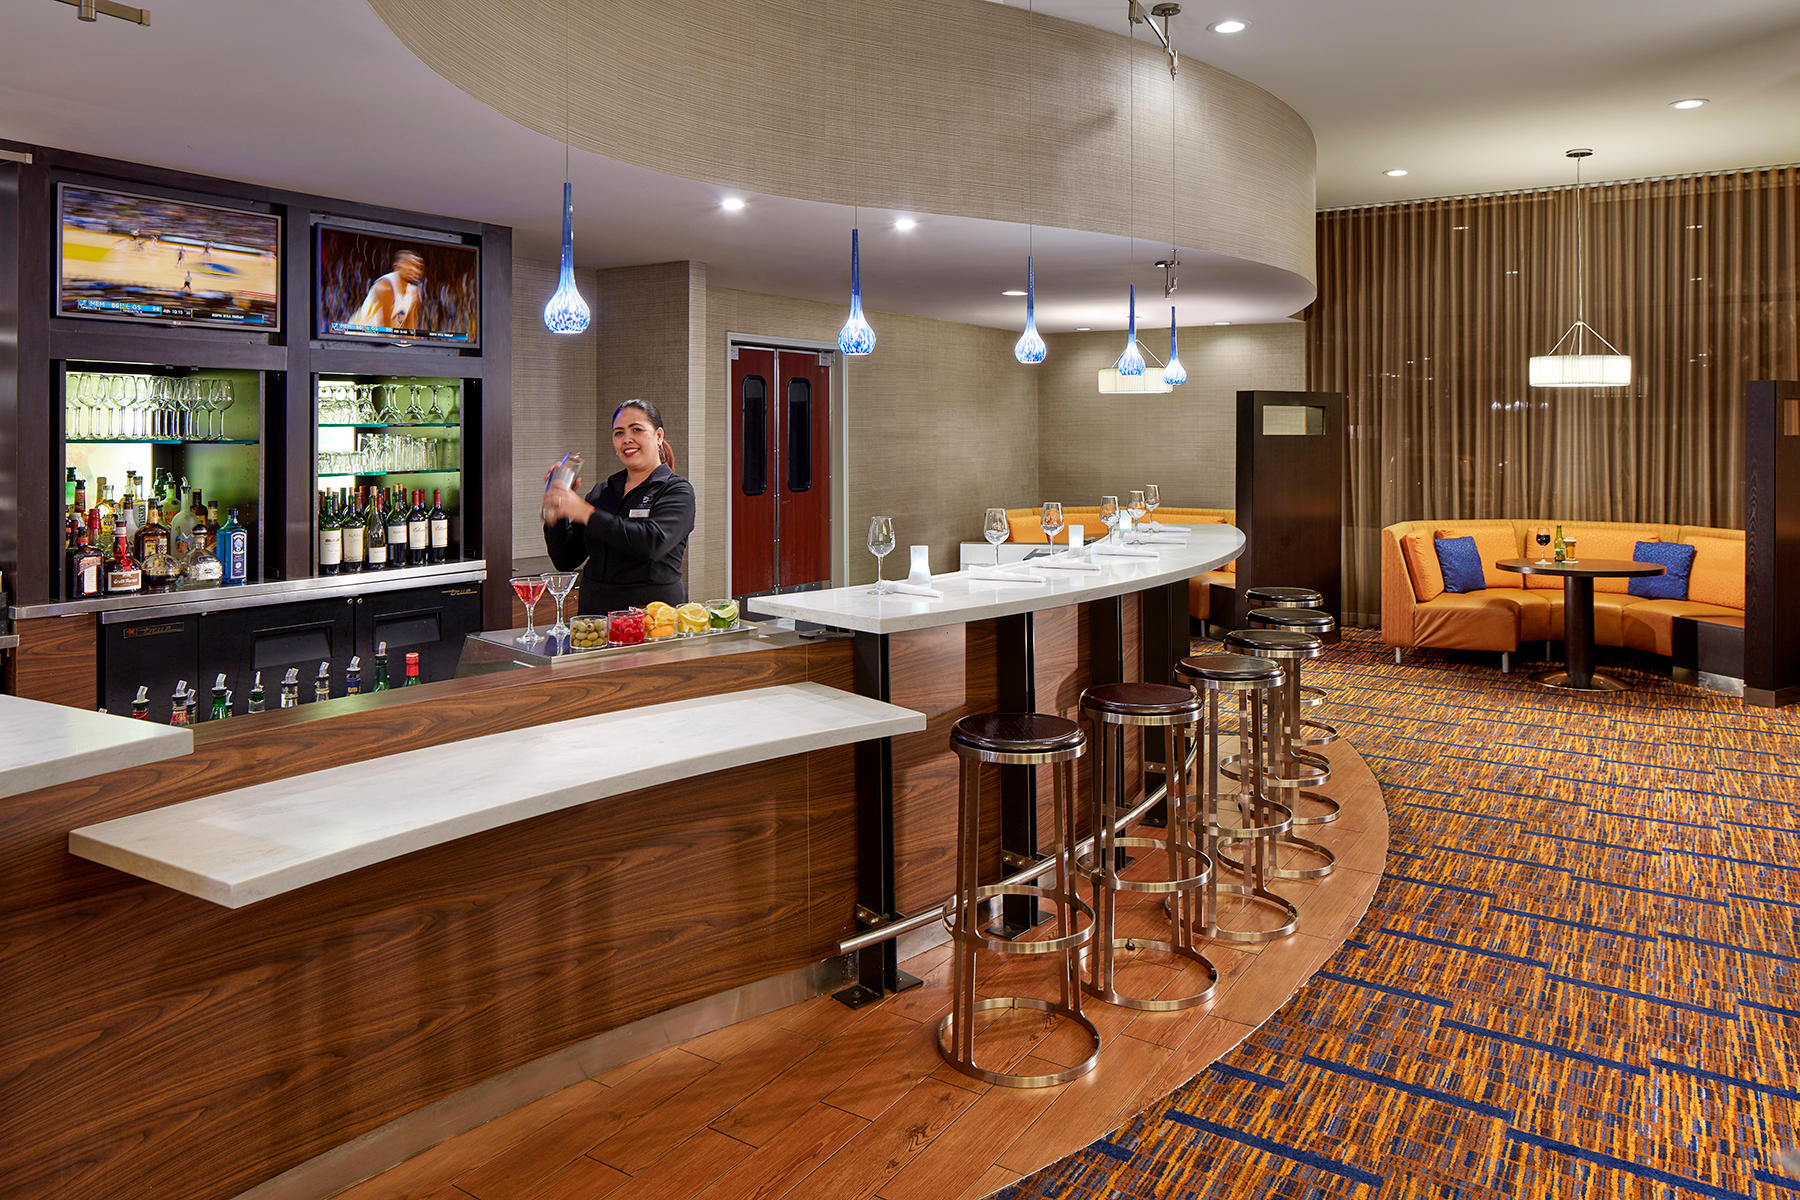 Courtyard by Marriott Vallejo Napa Valley image 3